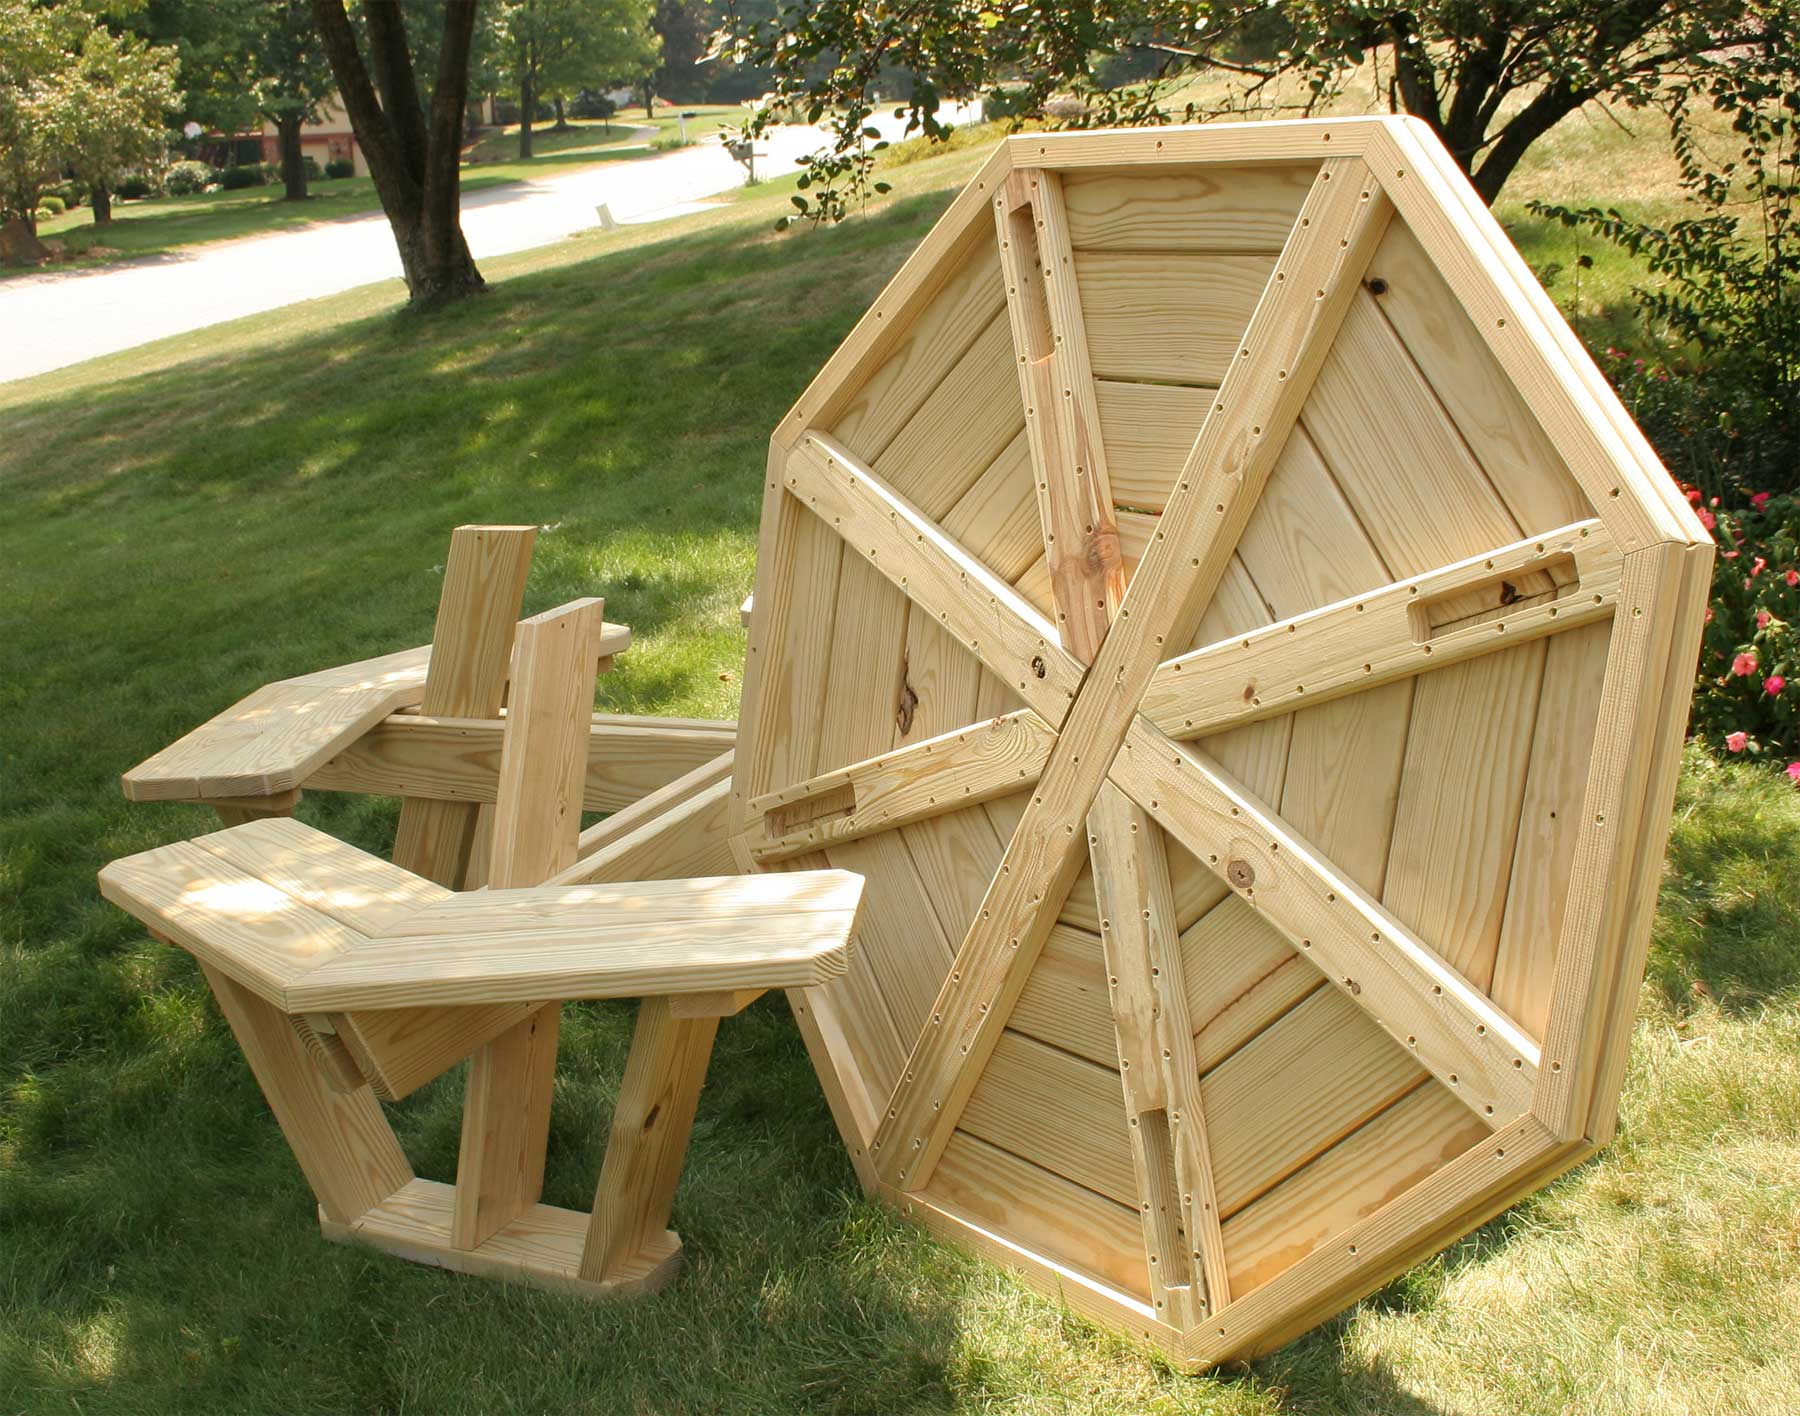 Building Plans Octagon Picnic Table How to Build PDF Download building ...